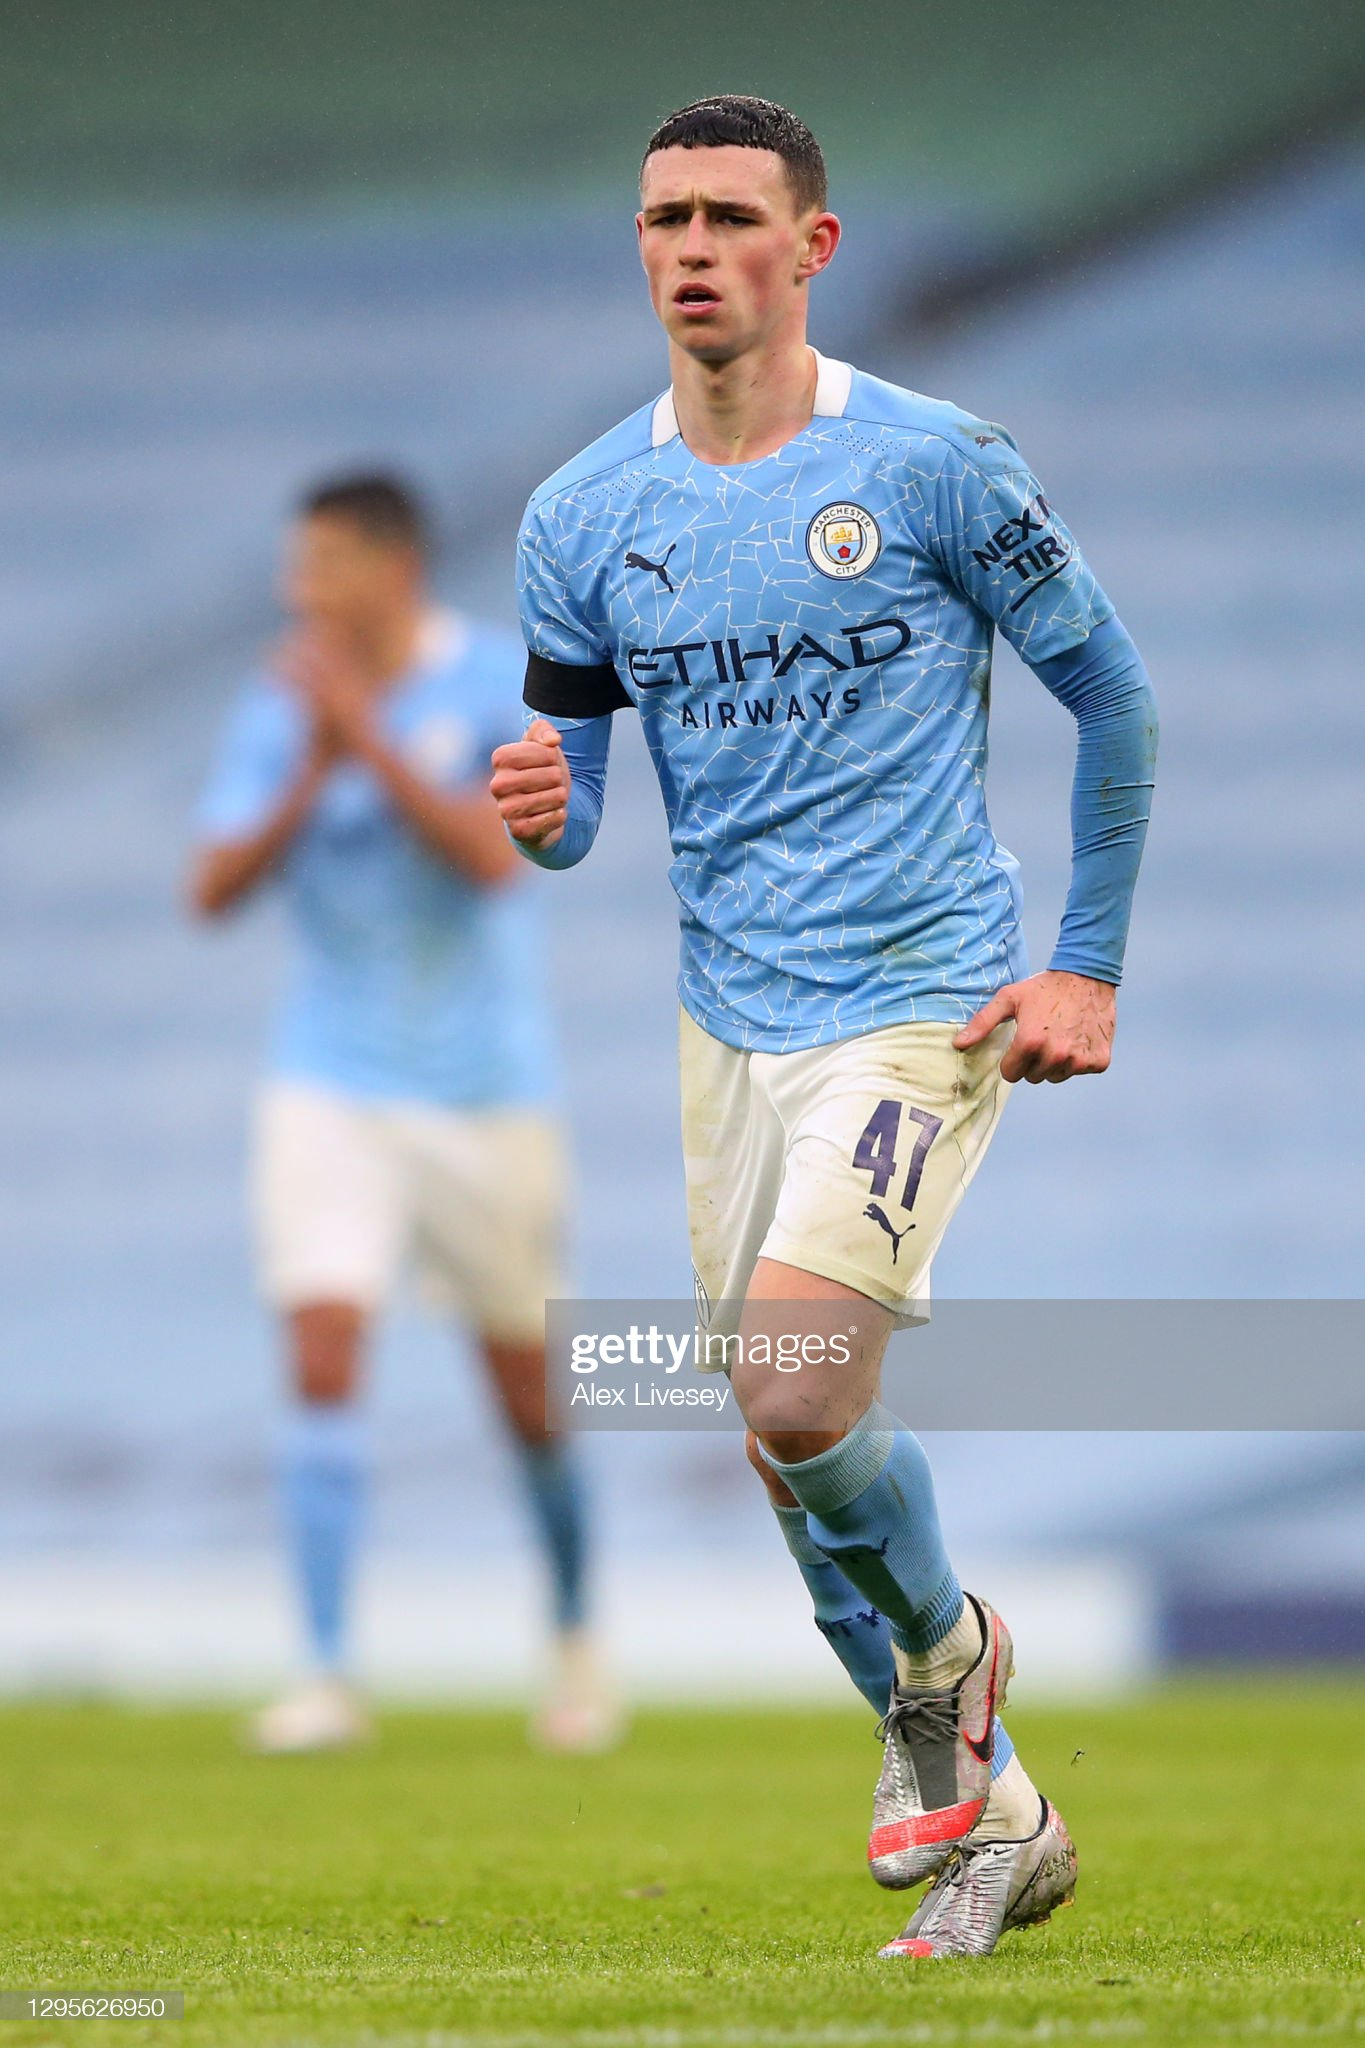 ¿Cuánto mide Phil Foden? - Altura - Real height Phil-foden-of-manchester-city-celebrates-after-scoring-their-sides-picture-id1295626950?s=2048x2048